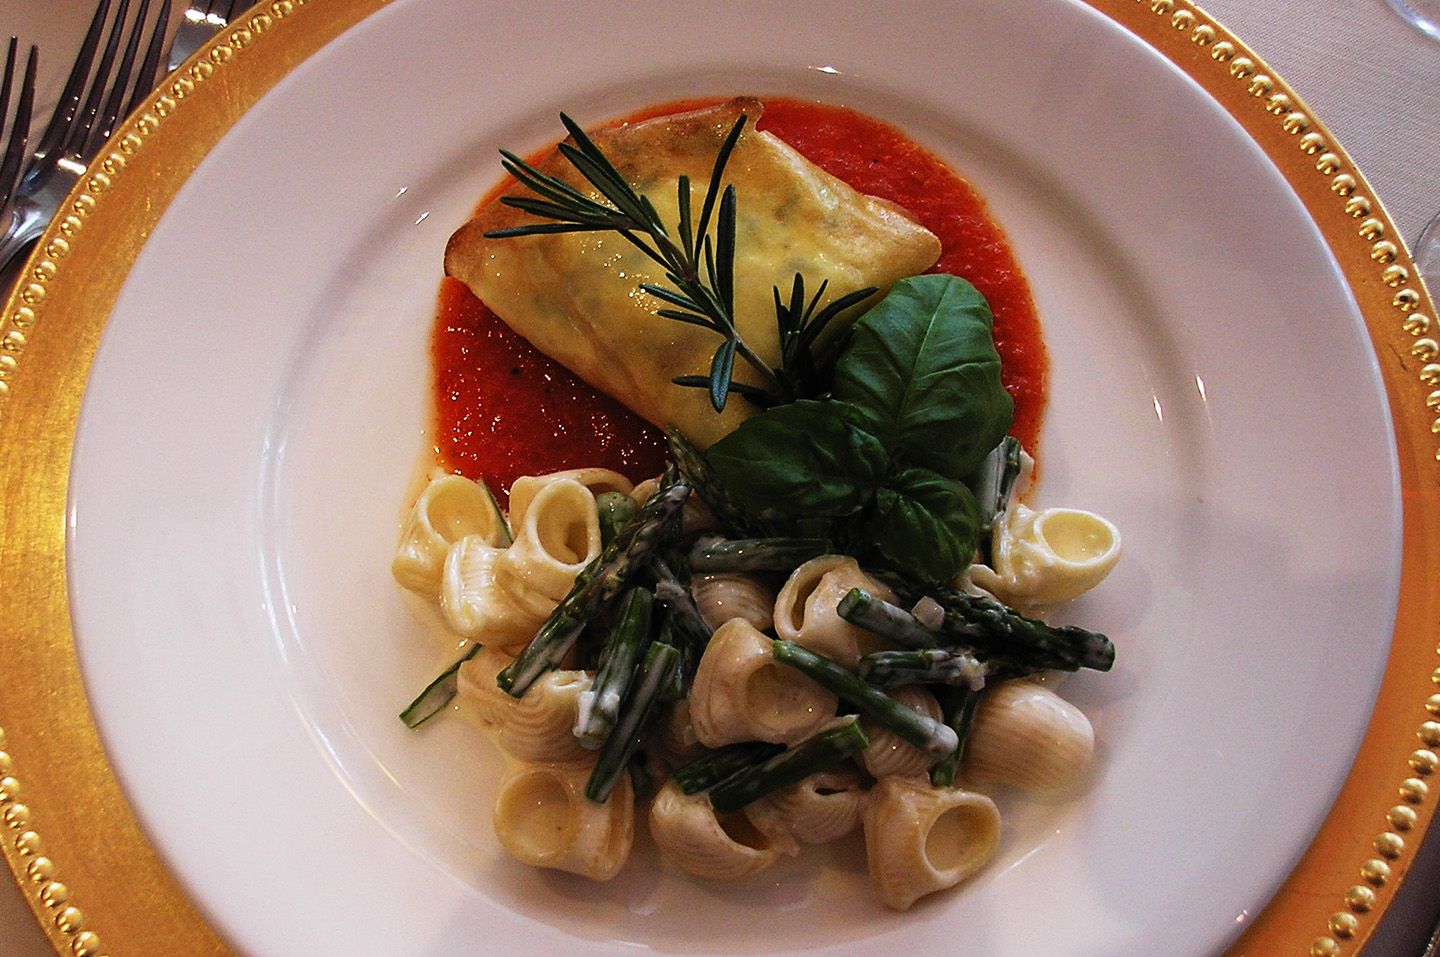 ... for your pasta. Stuffed pasta can be baked in creamy or tomato sauce